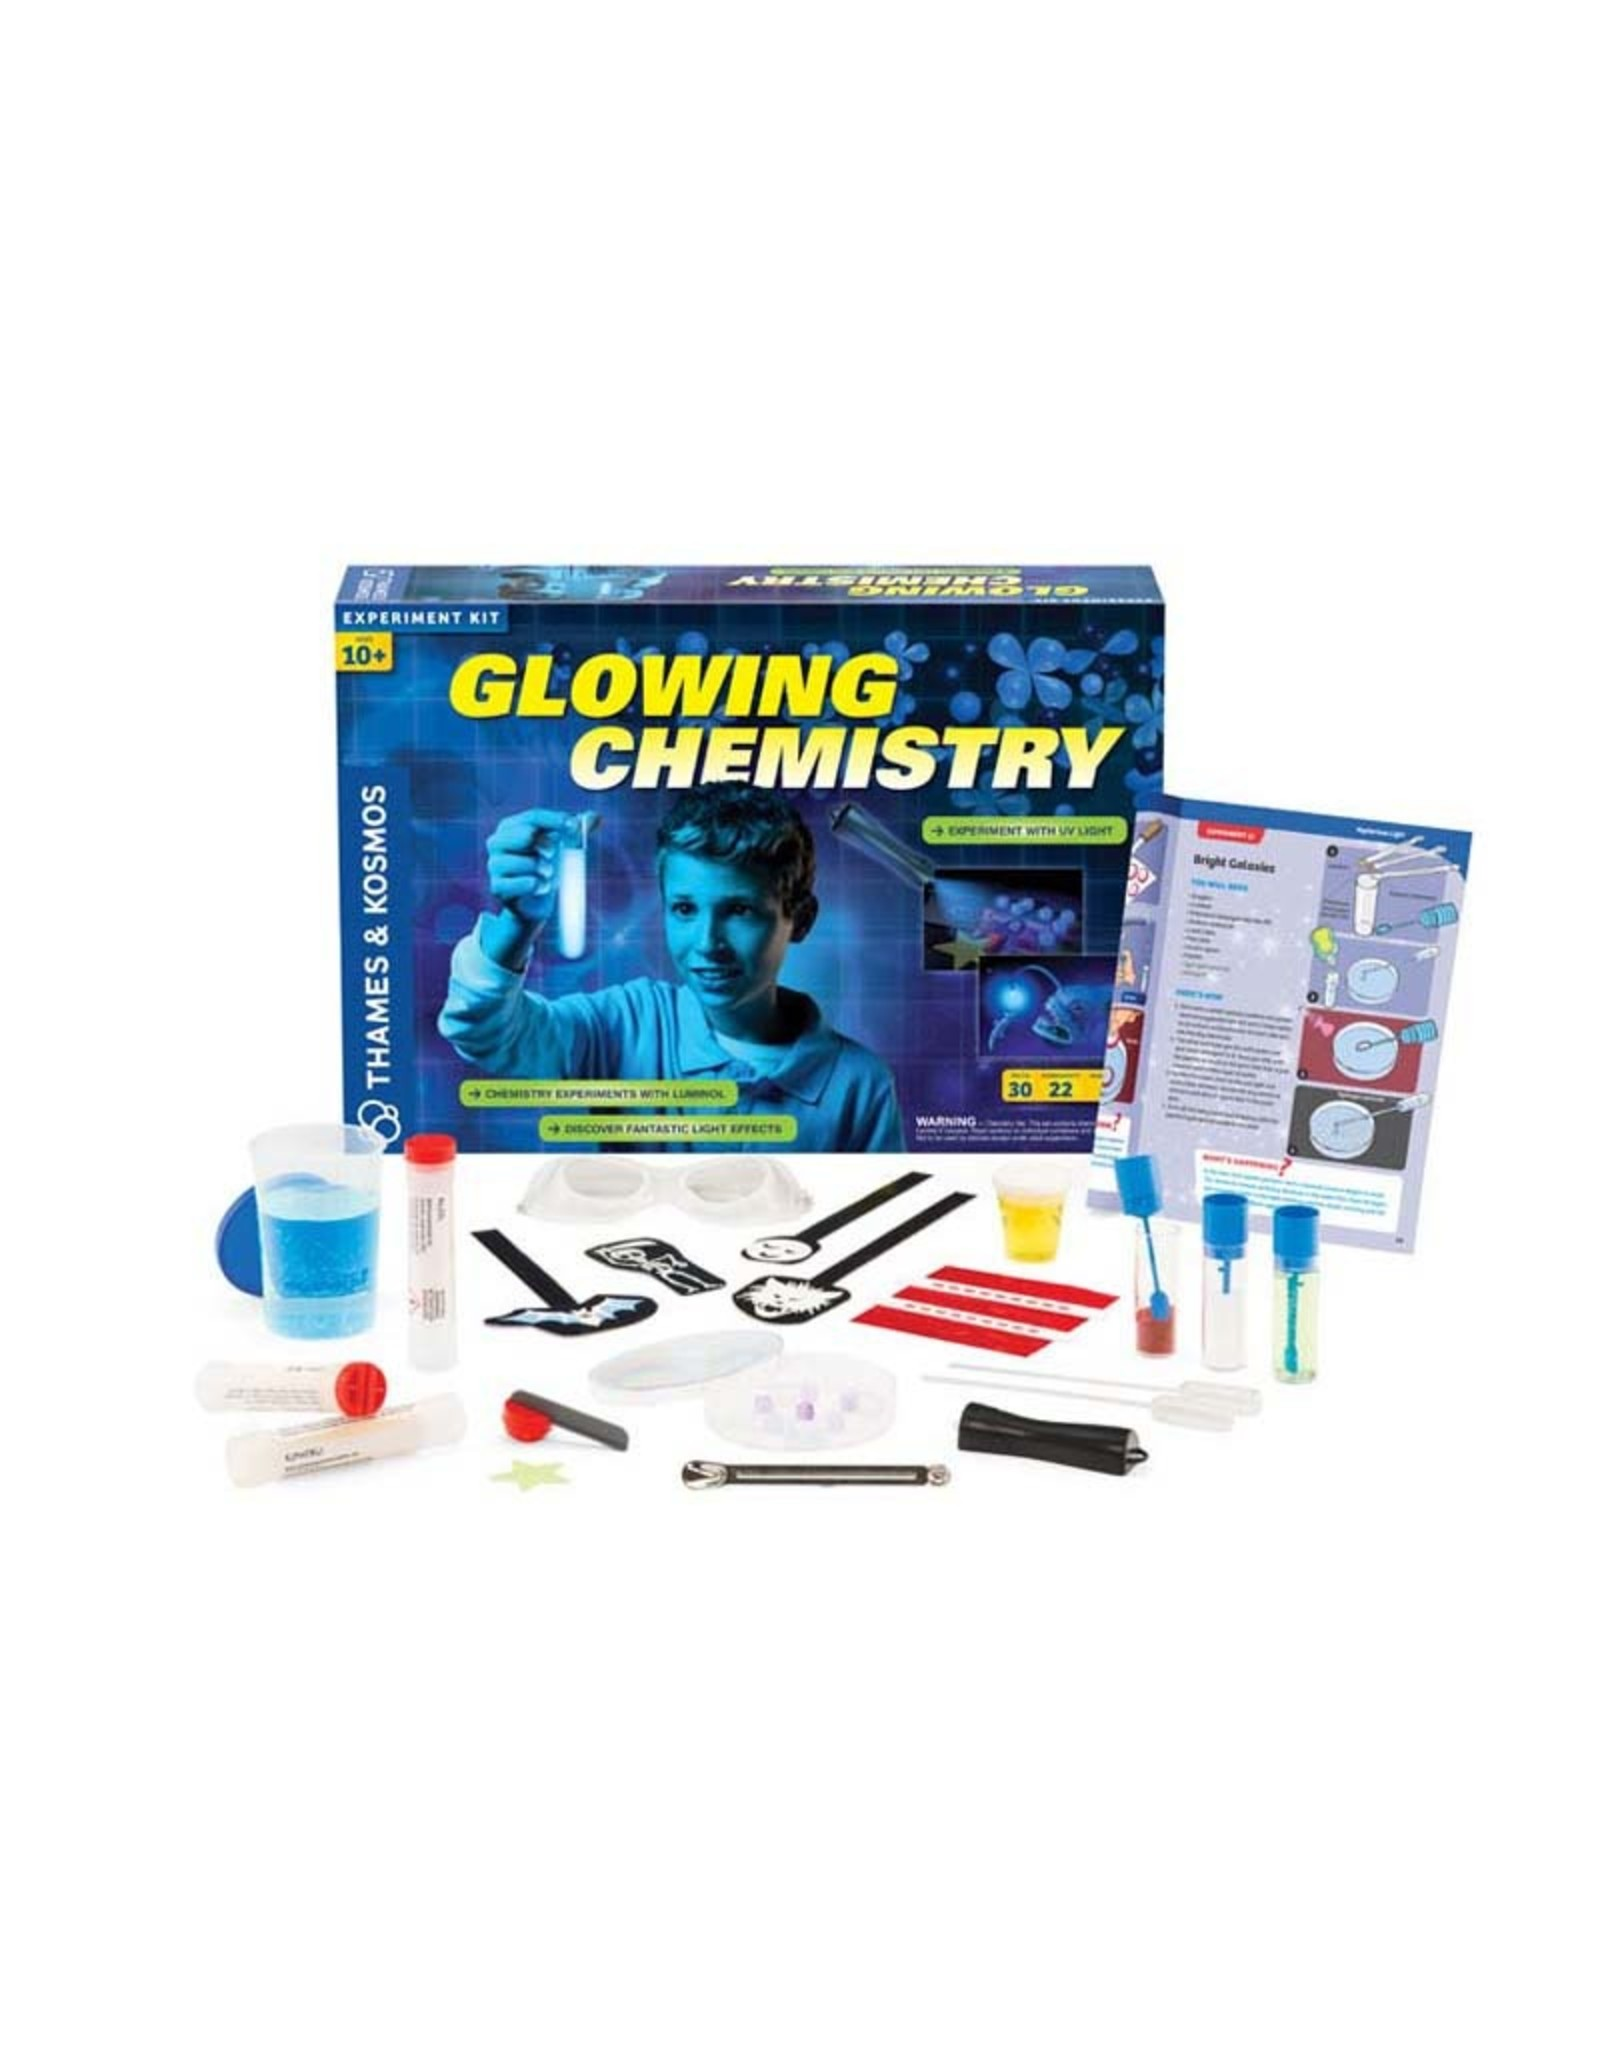 !Glowing Chemistry